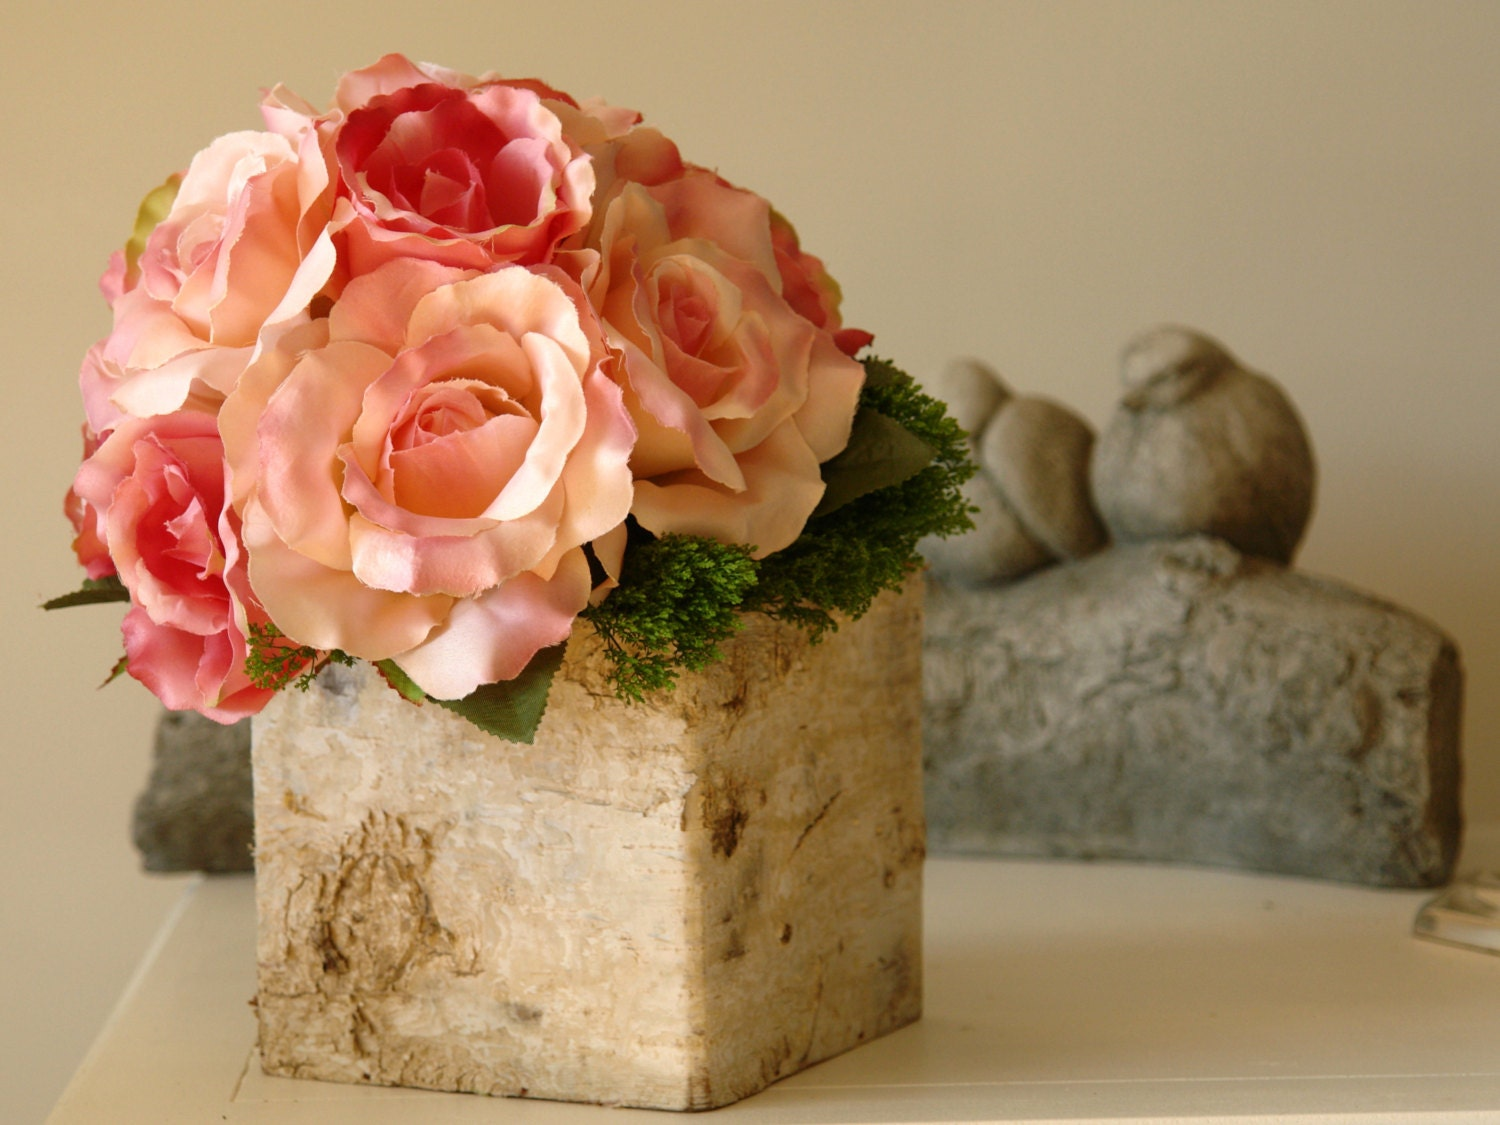 Birch bark wood vases boxes wedding table decor flower pot for Wood vases for centerpieces